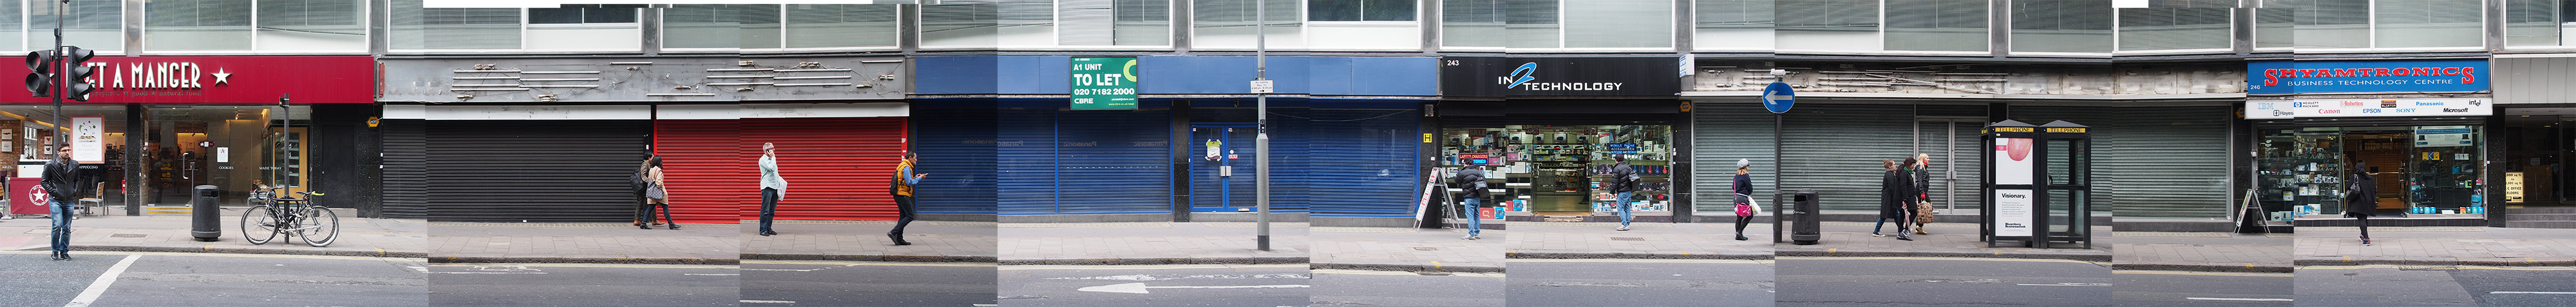 Things are looking bleak for electronics stores on Tottenham Court Road, London